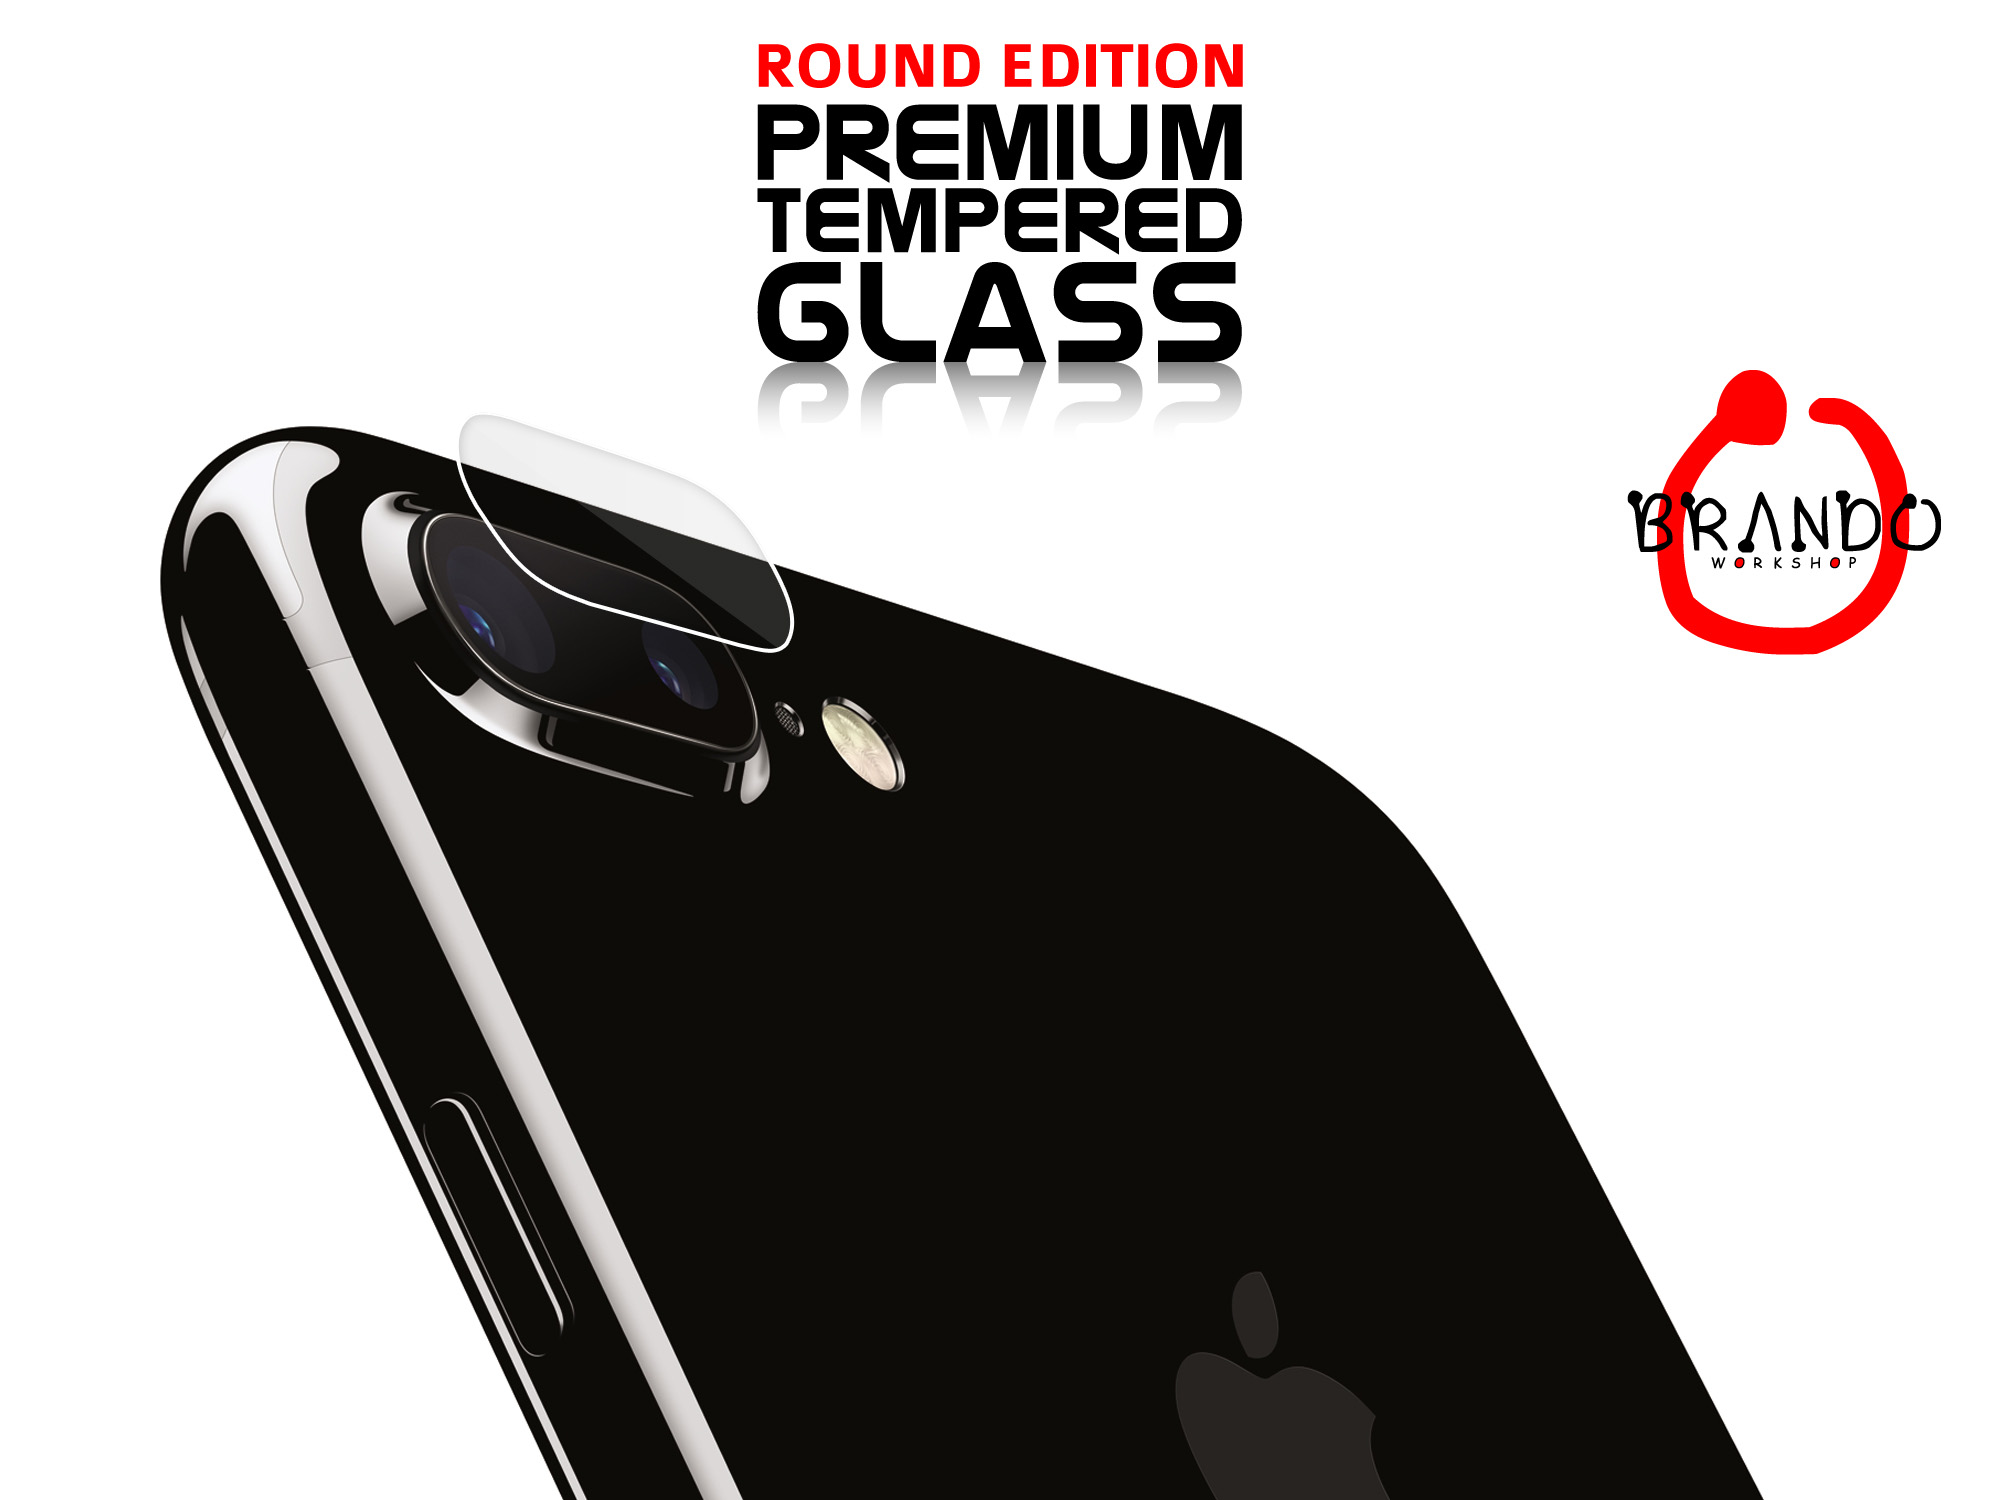 Brando Workshop Premium Tempered Glass Protector (Rounded Edition) (iPhone 7 Plus Rear Camera)